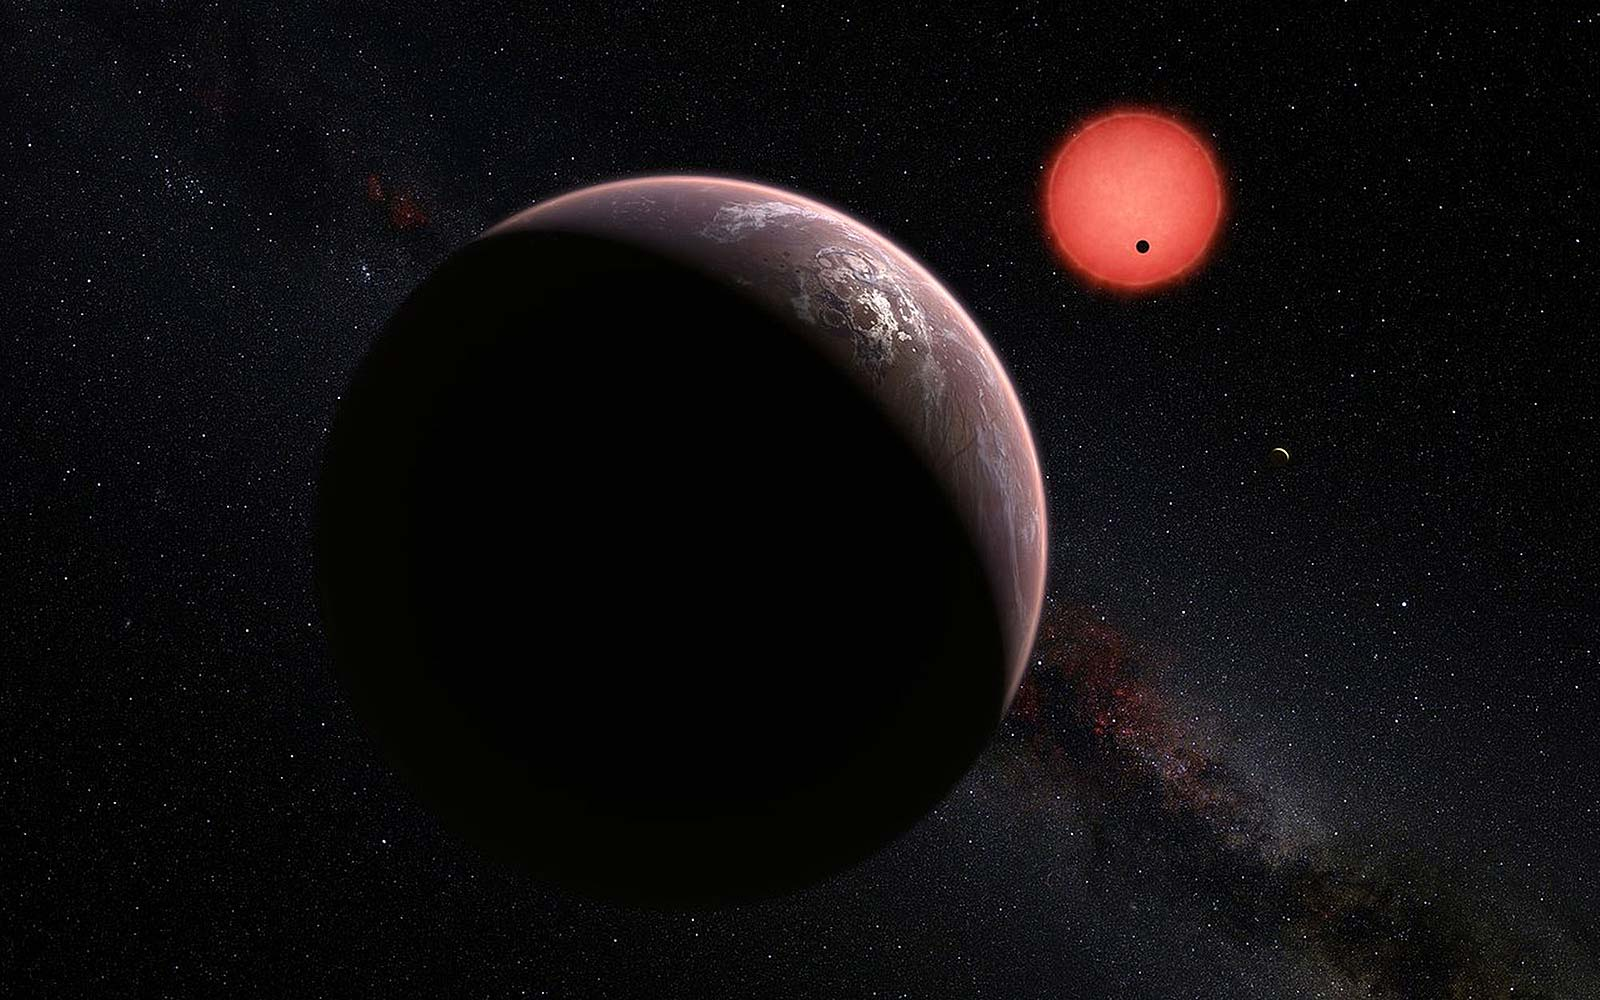 NASA Announces Trappist-1 Star Is Home to Earthlike Planets